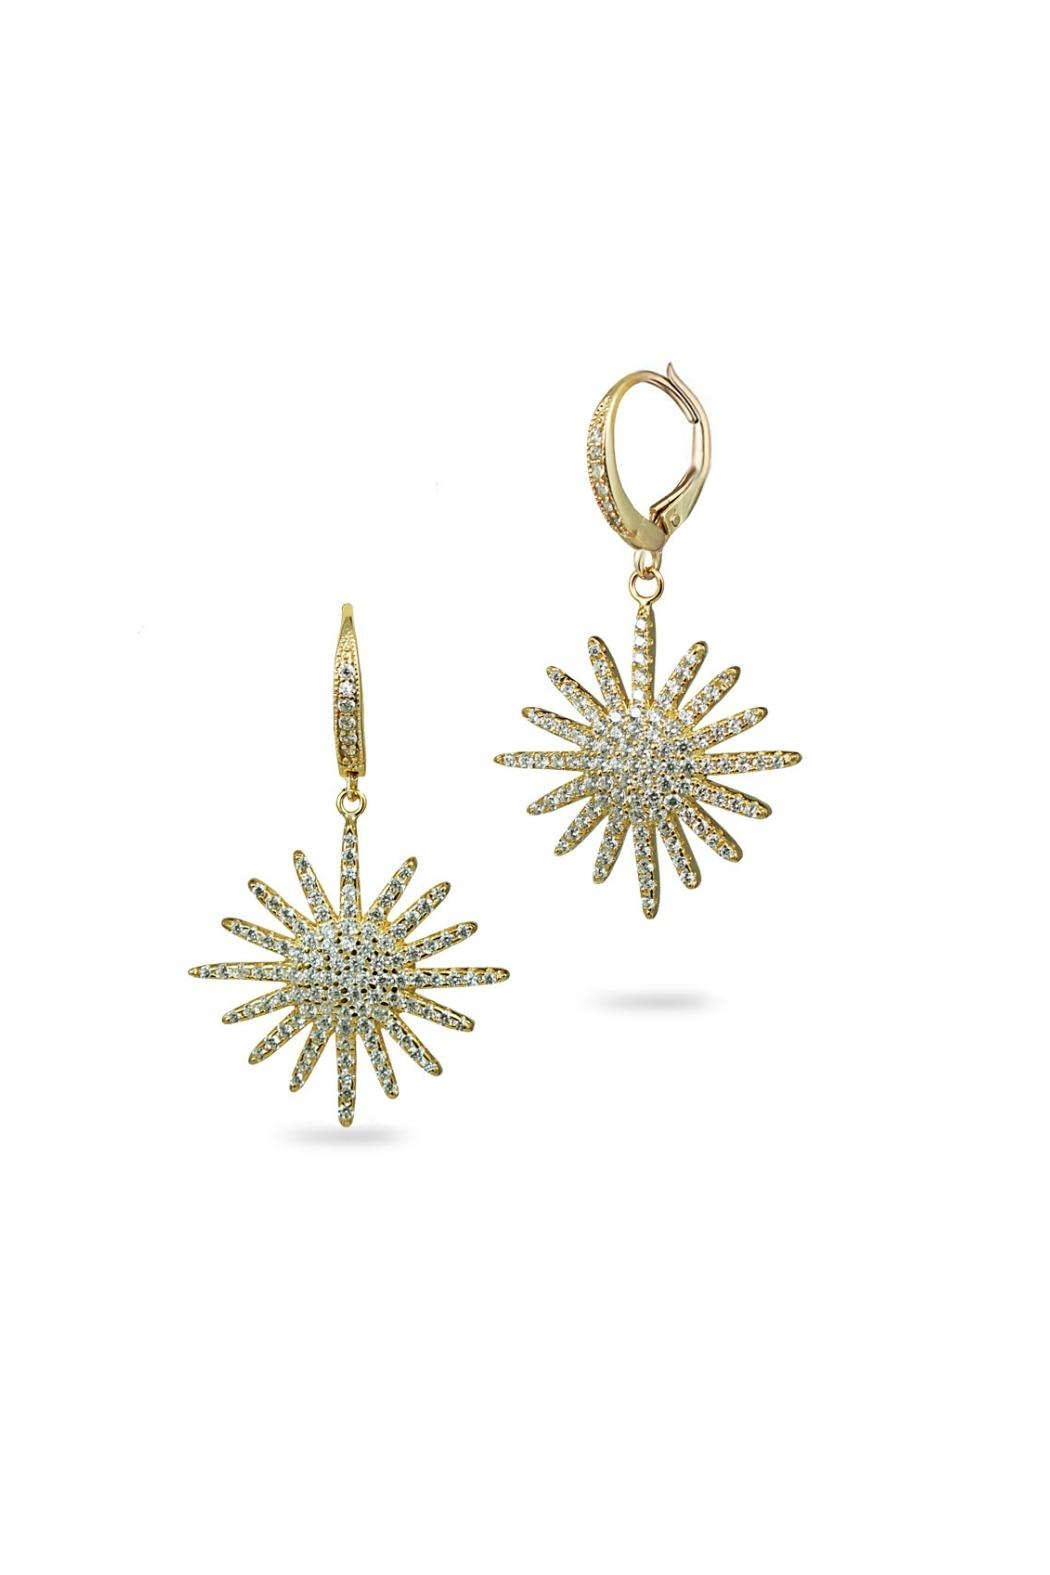 Jaimie Nicole Gold Starburst Drop Earrings - Main Image